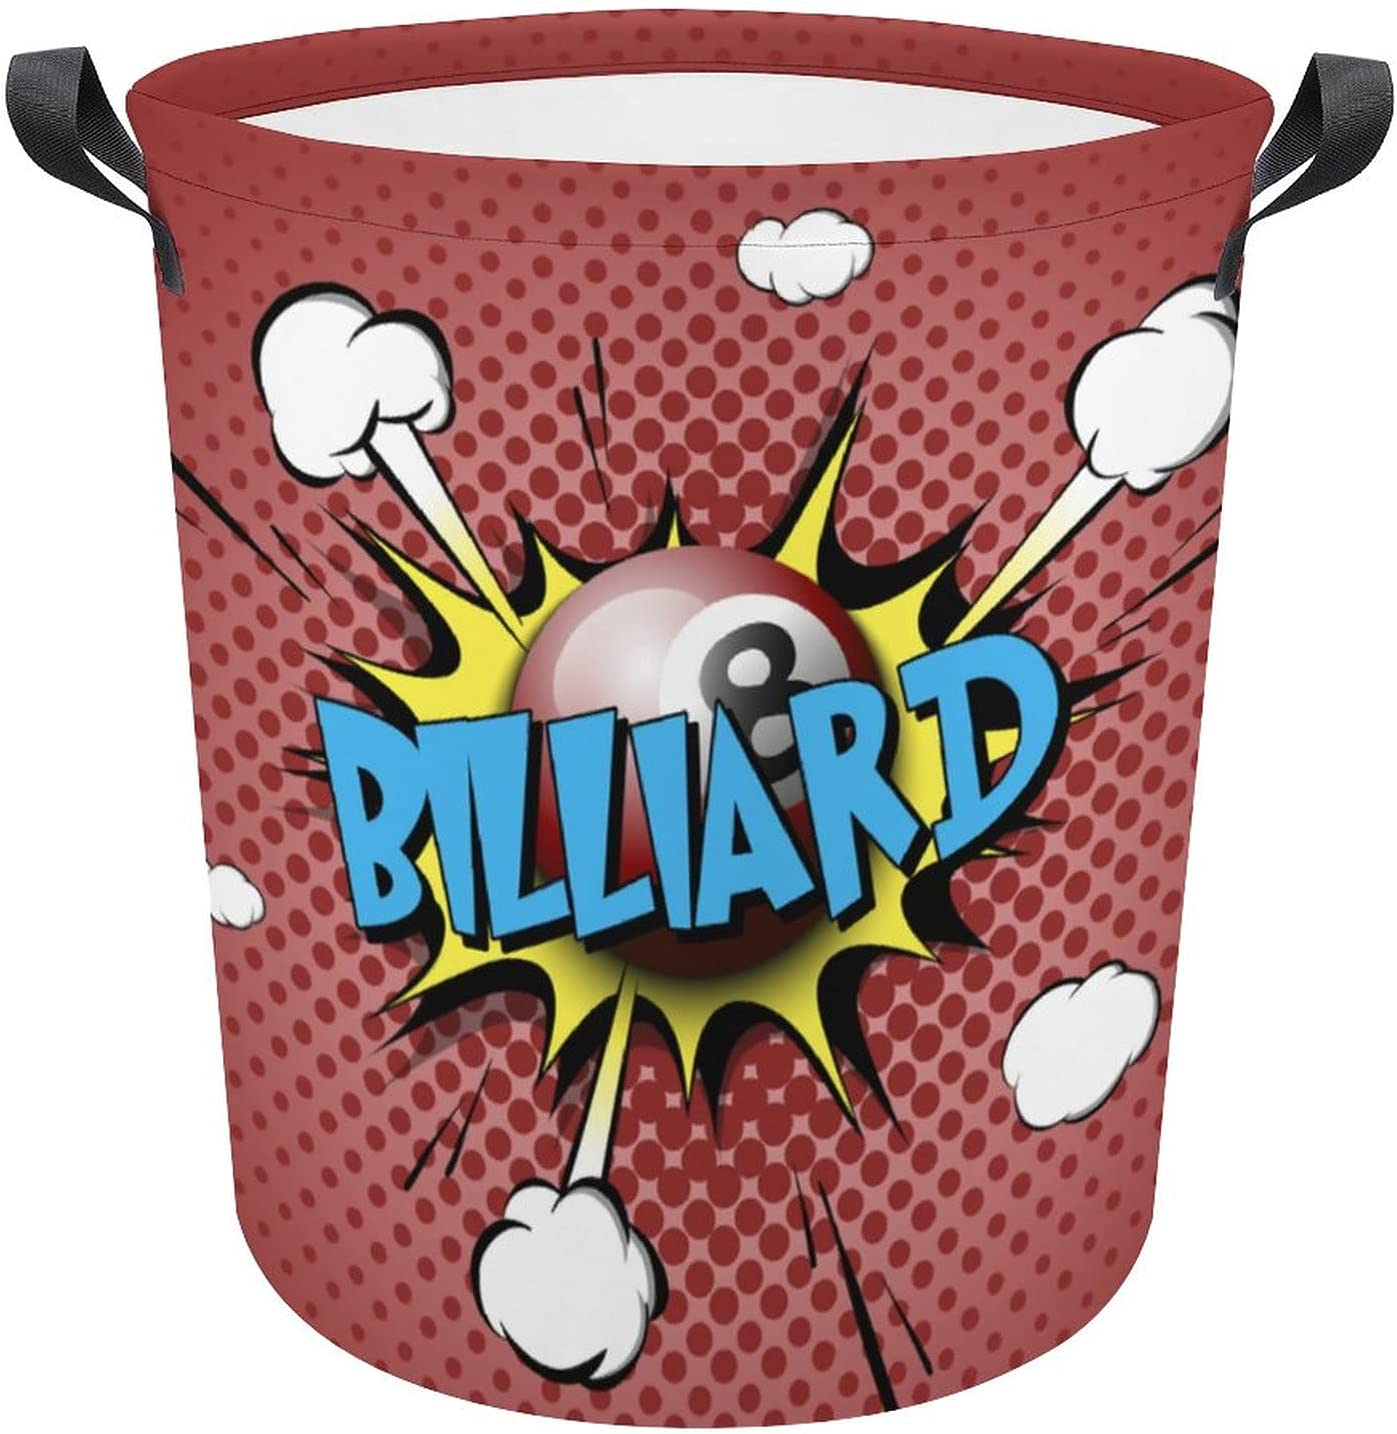 Billiard Ball Super Special SALE held with Comics Style Sports Lau Fan 2021new shipping free shipping Gift Funny Oxford